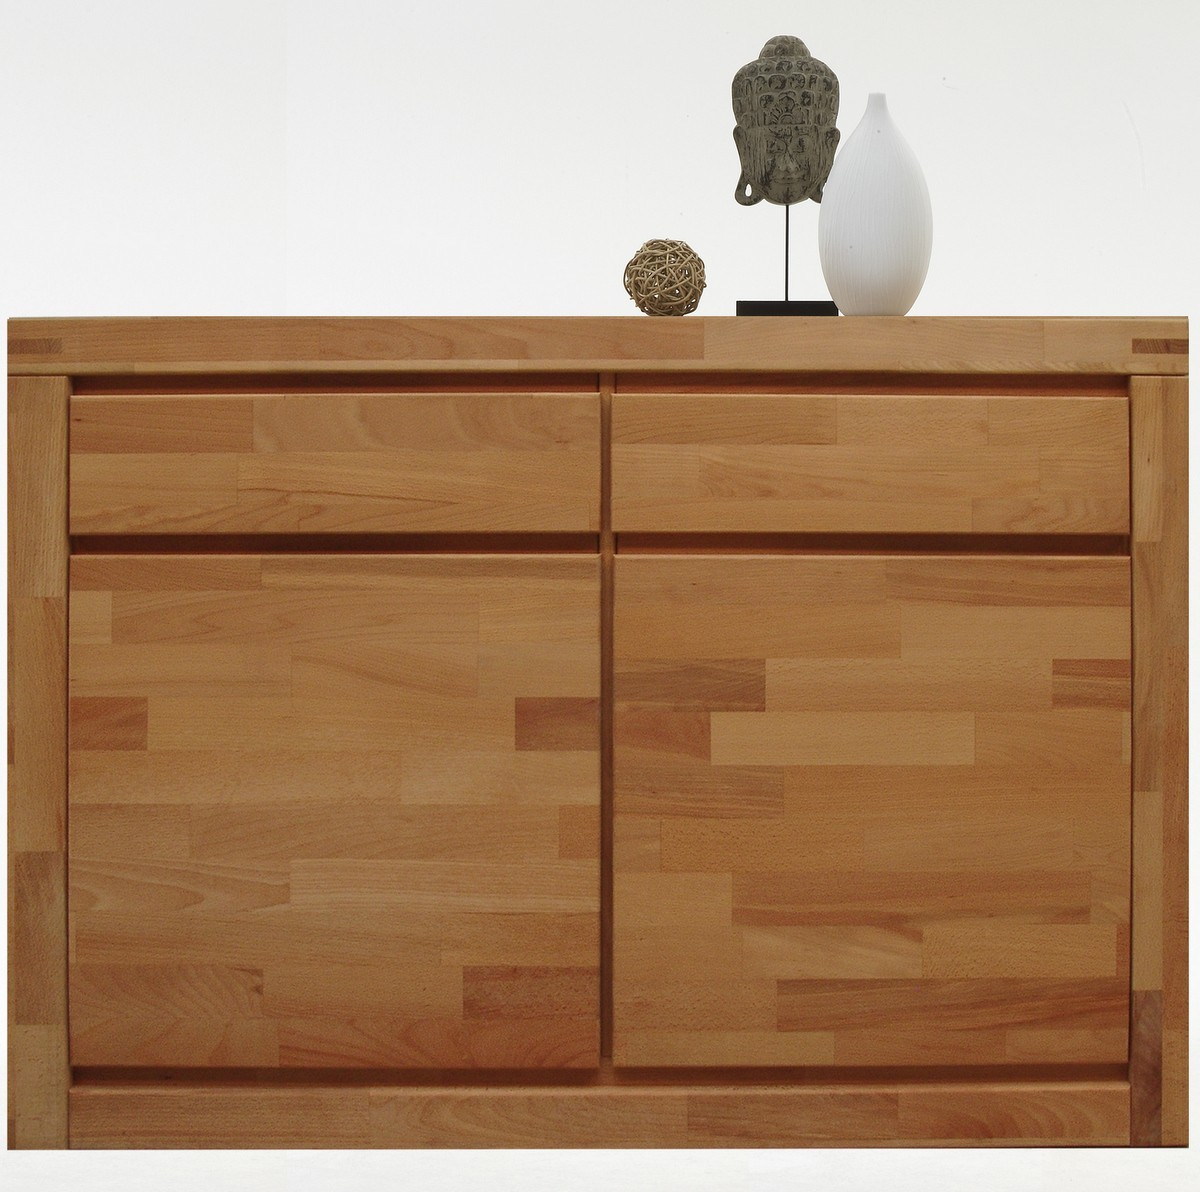 kommode sideboard schrank fjord 2trg mit kernbuche massiv ge lt ebay. Black Bedroom Furniture Sets. Home Design Ideas